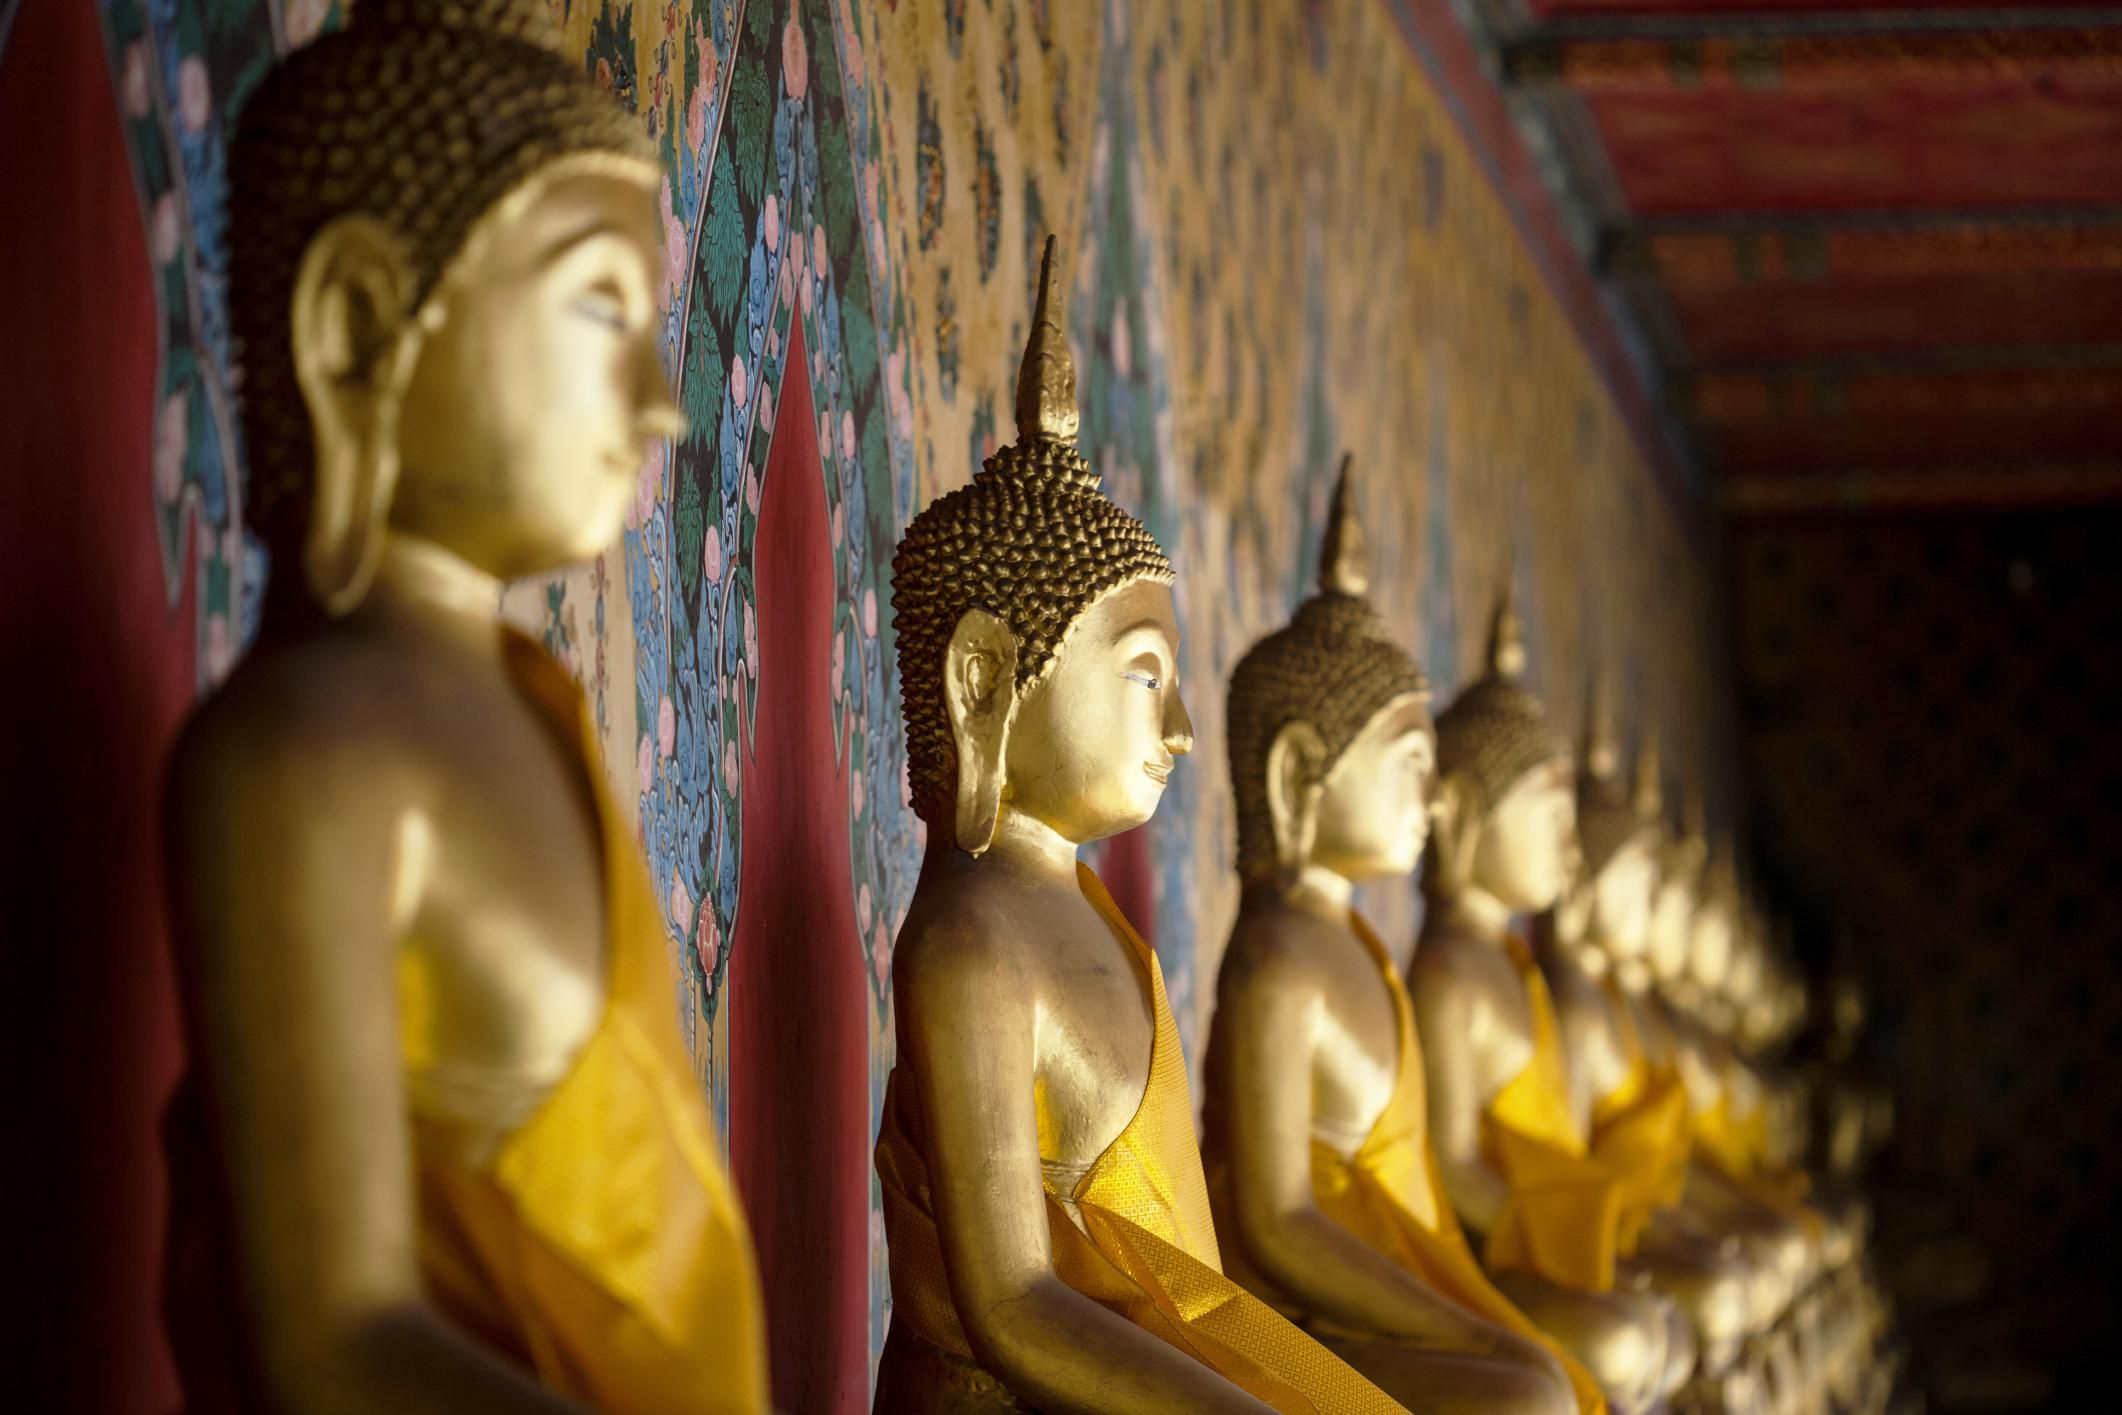 Taking Refuge: Becoming a Buddhist